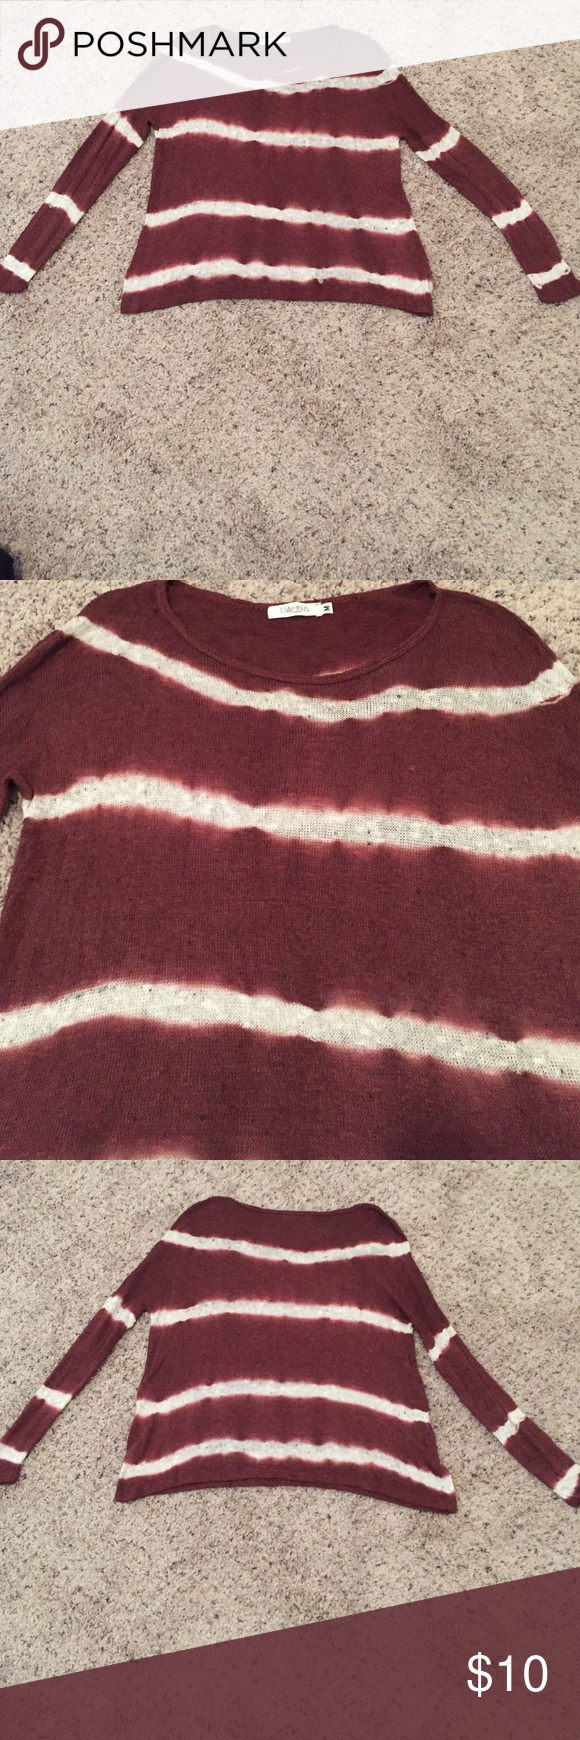 Maroon and White Striped Sweater | Striped sweaters and Sweaters